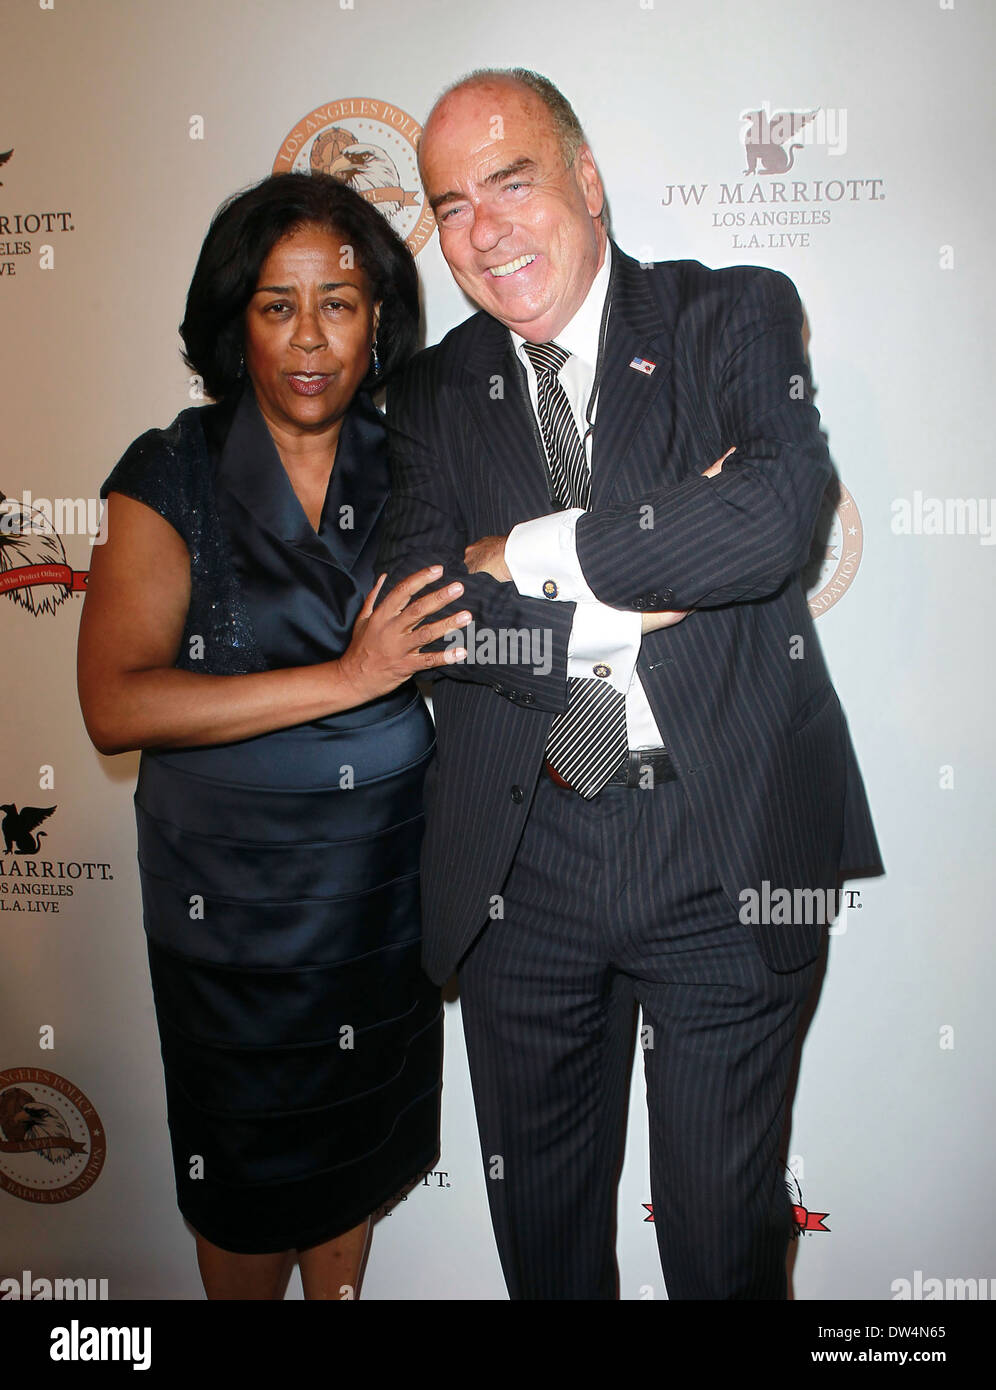 Jan Perry and Arthur Cassell Los Angeles Police Protective League's 11th Anniversary Eagle & Badge Foundation Gala at the JW Marriott Los Angeles, California - 06.10.12 Featuring: Jan Perry and Arthur Cassell Where: Los Angeles, California, United States - Stock Image